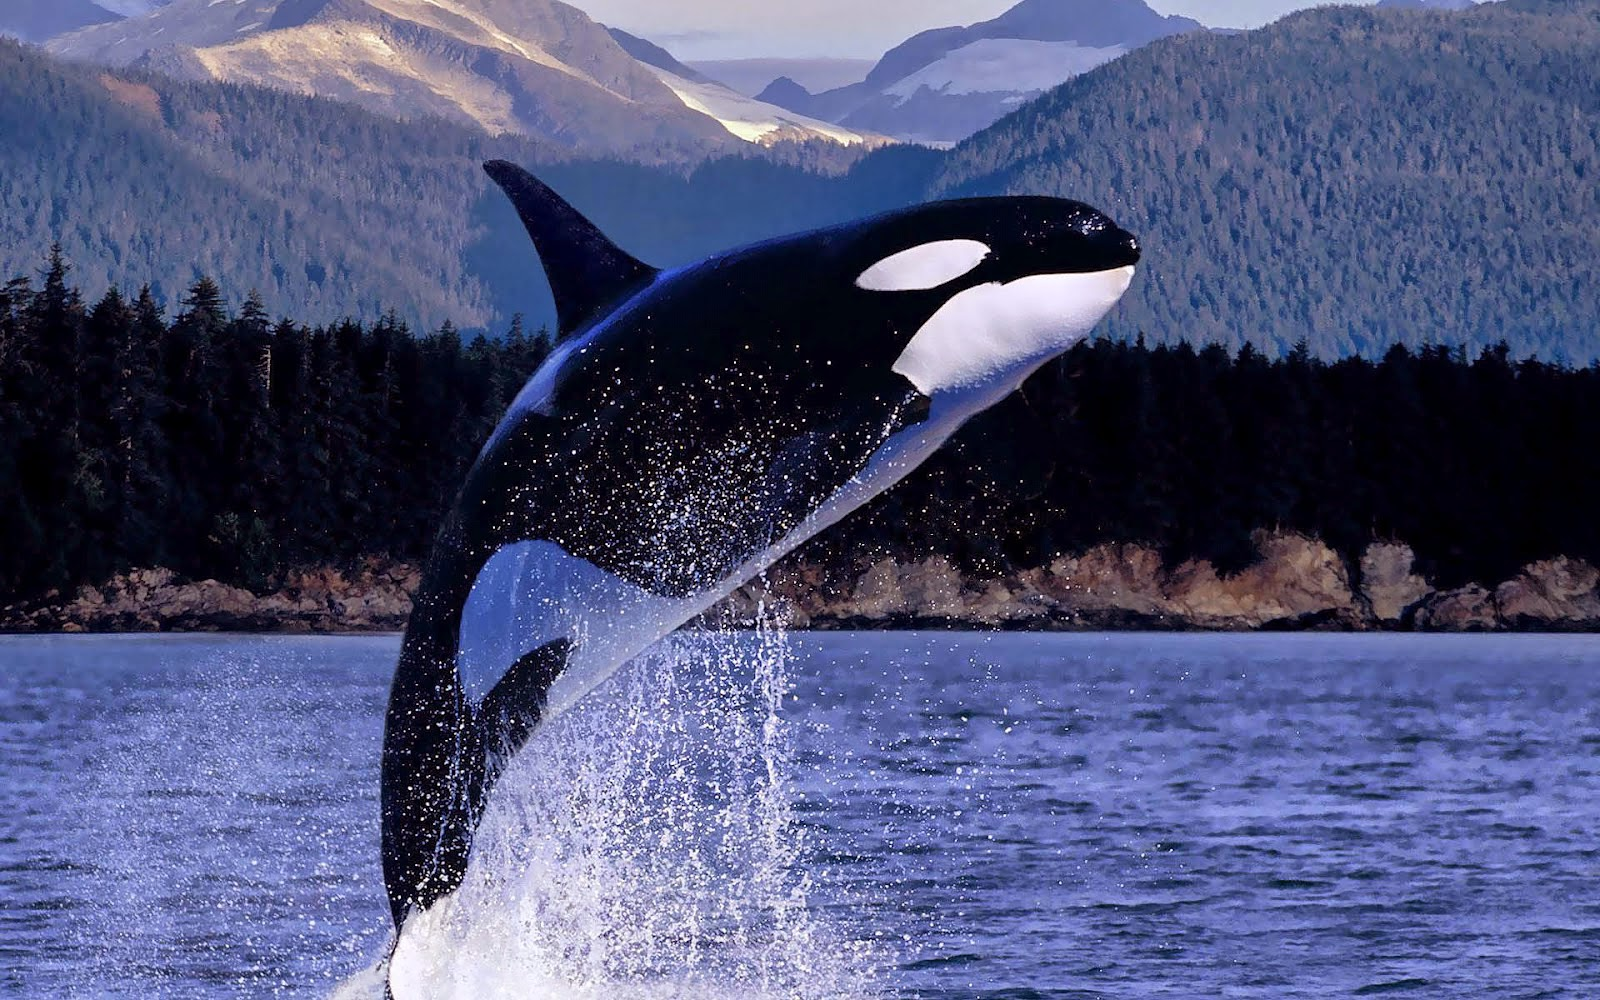 Killer whale still carrying her dead calf after 16 days